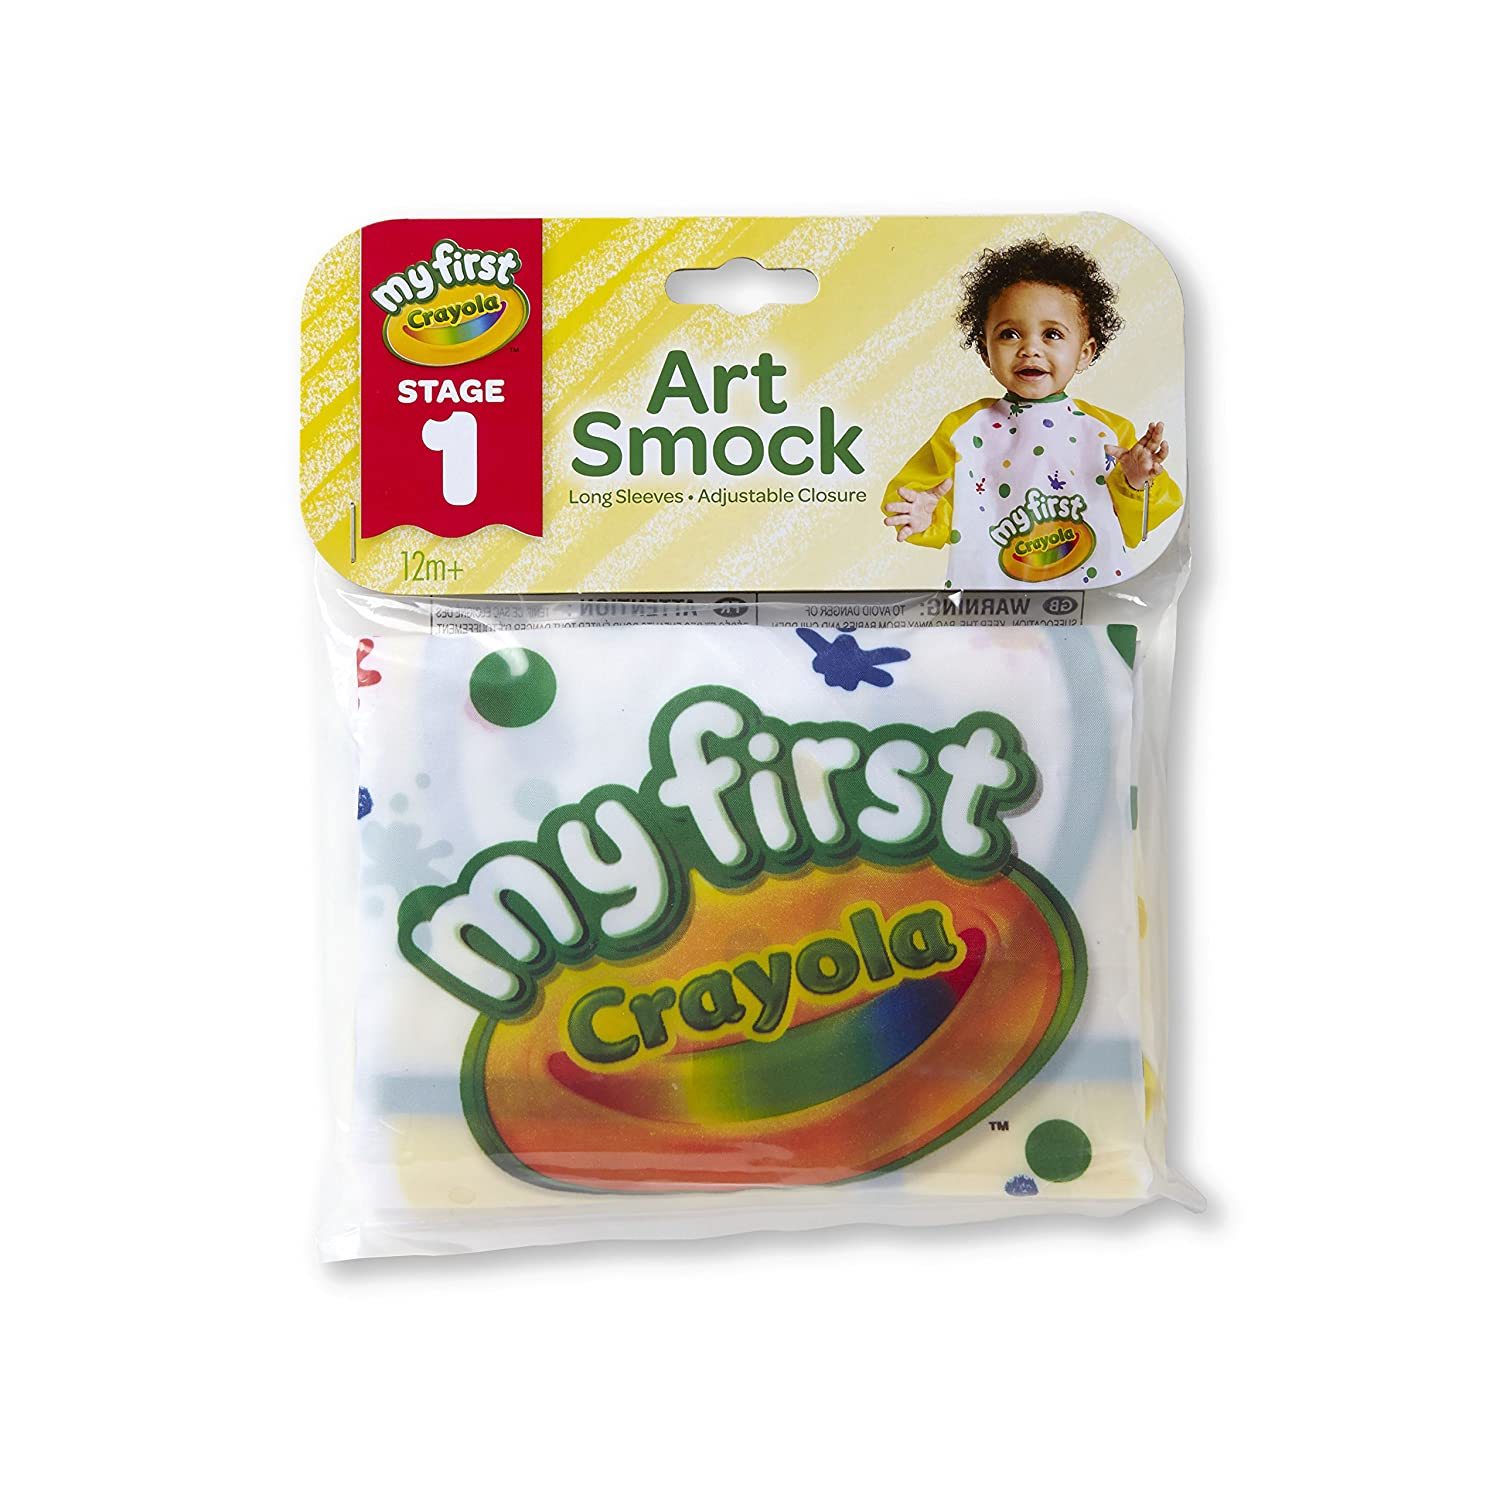 Crayola Art Smock for Toddlers, Painting Apron, Waterproof Bib, Age 12 Months and up Binney & Smith 81-1379